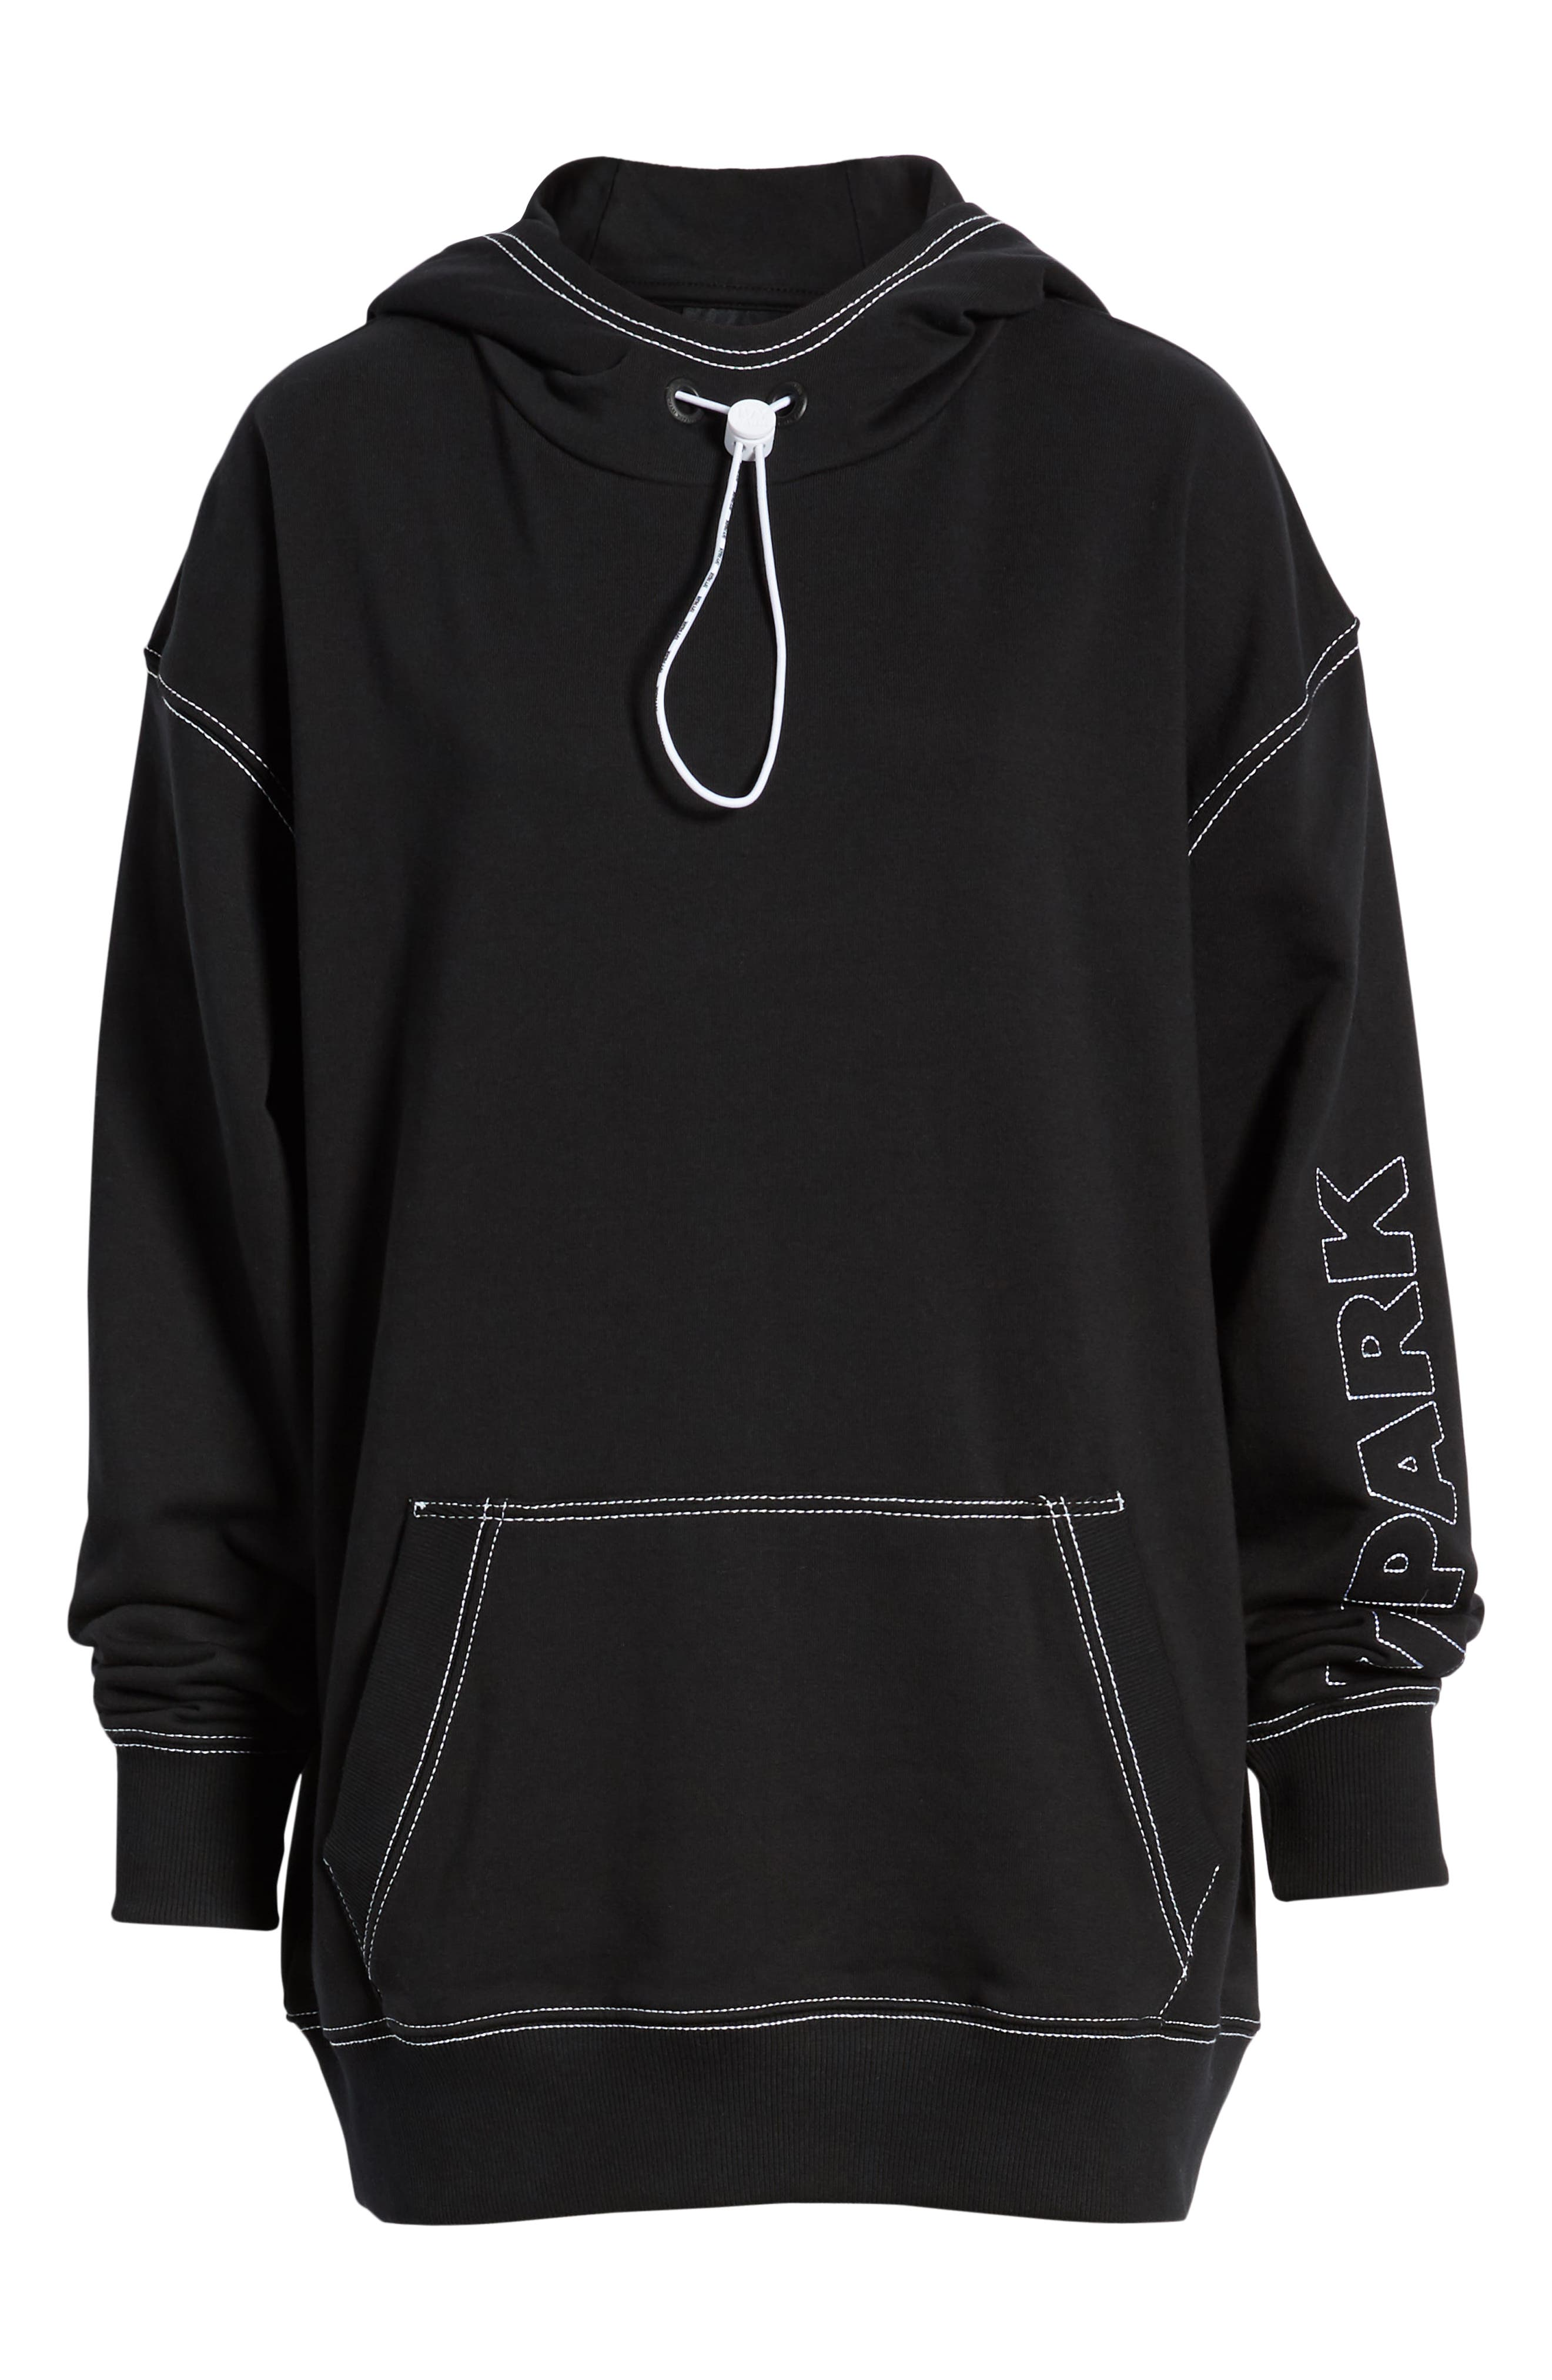 IVY PARK<SUP>®</SUP>, Stab Stitch Hoodie, Alternate thumbnail 7, color, 002